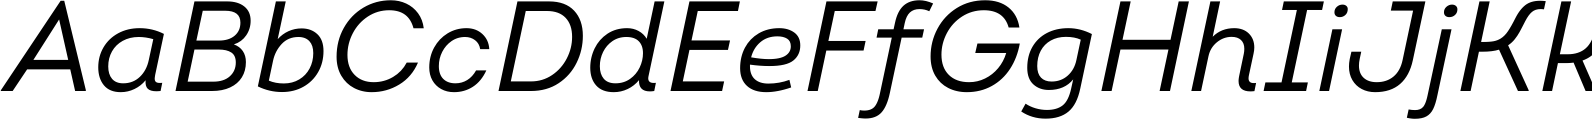 Intro Regular Italic Font